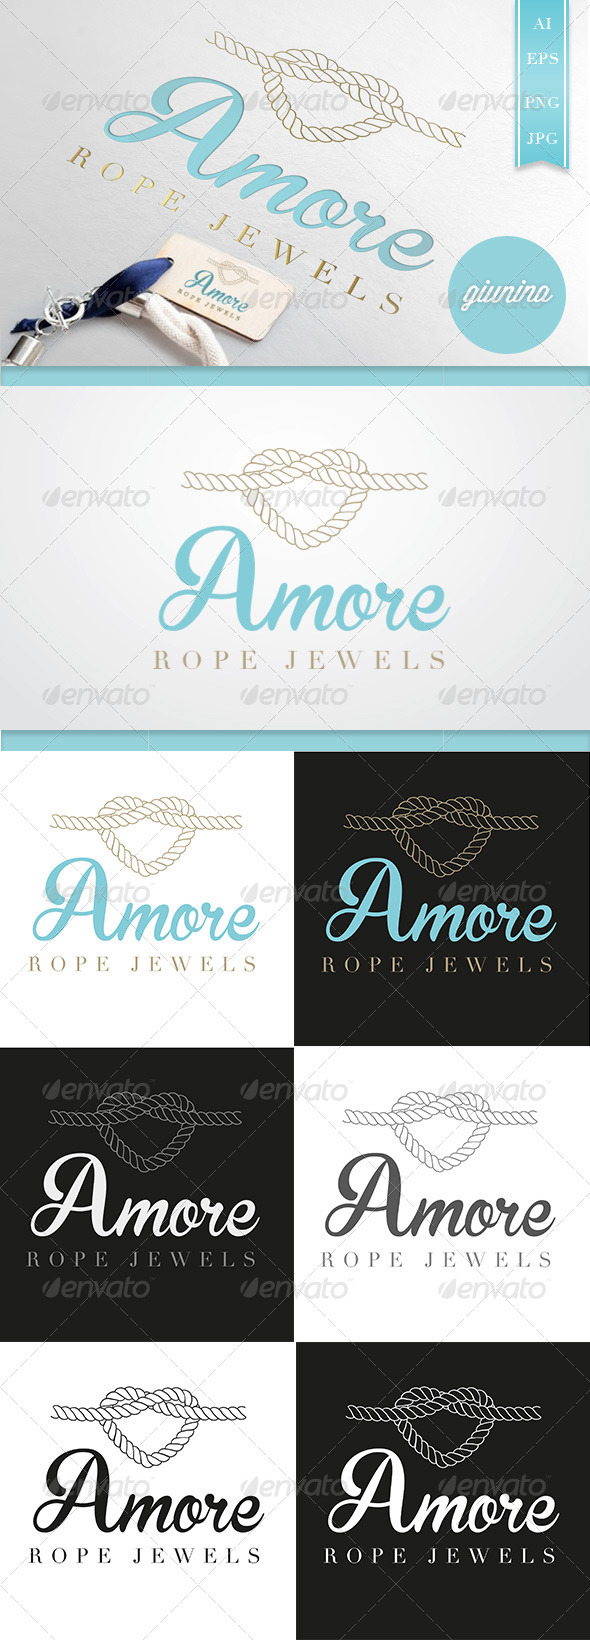 Jewels Amore Logo Template - Objects Logo Templates